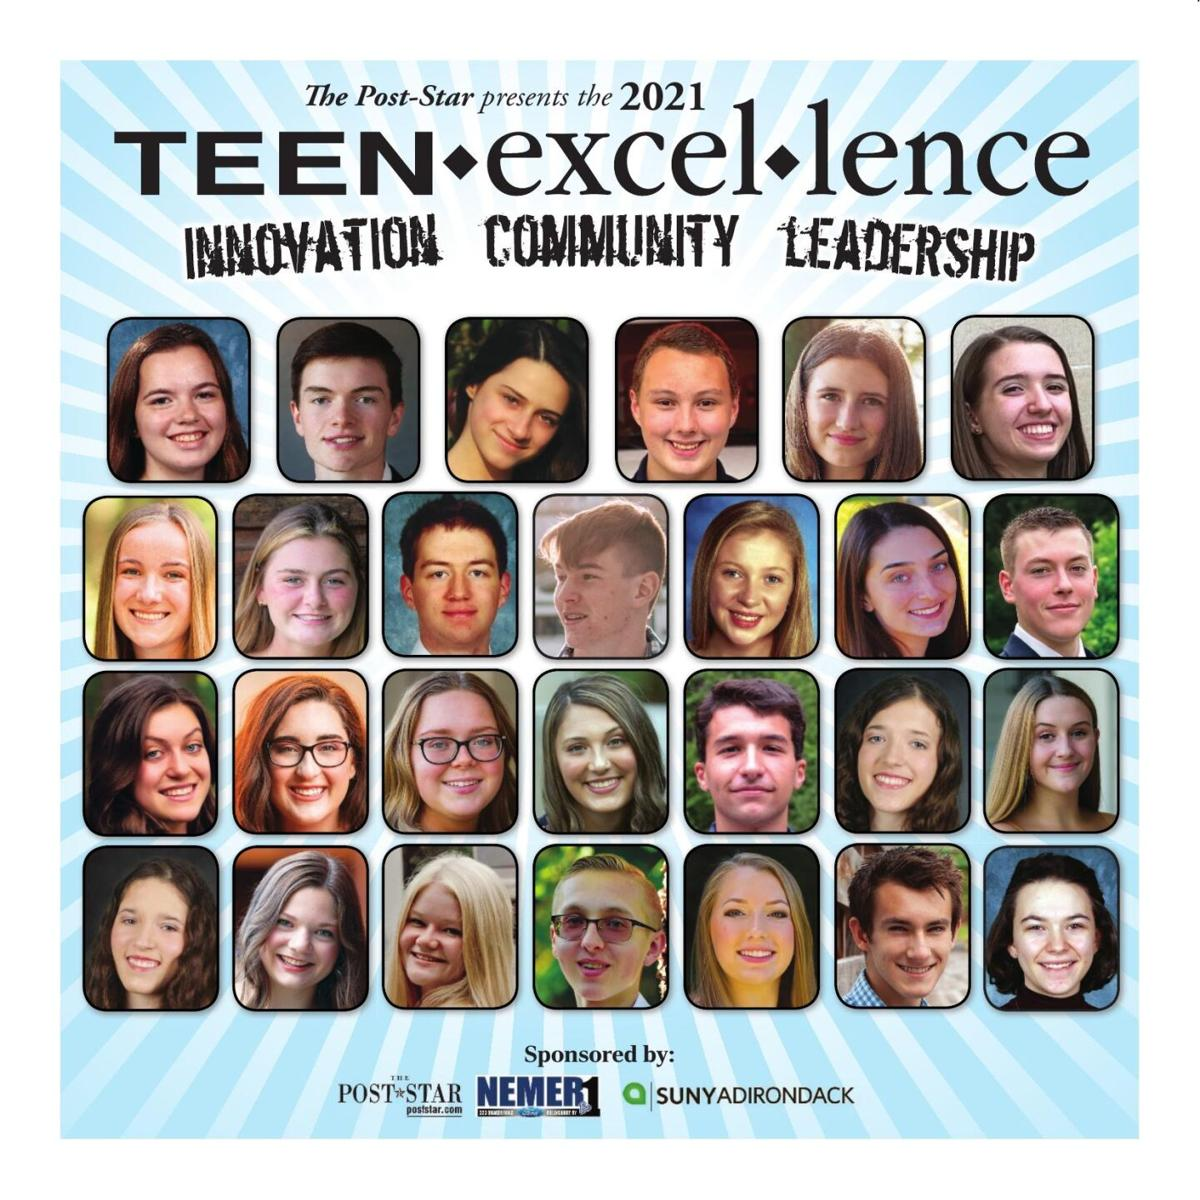 2021 Teen Excellence 3.3.2021